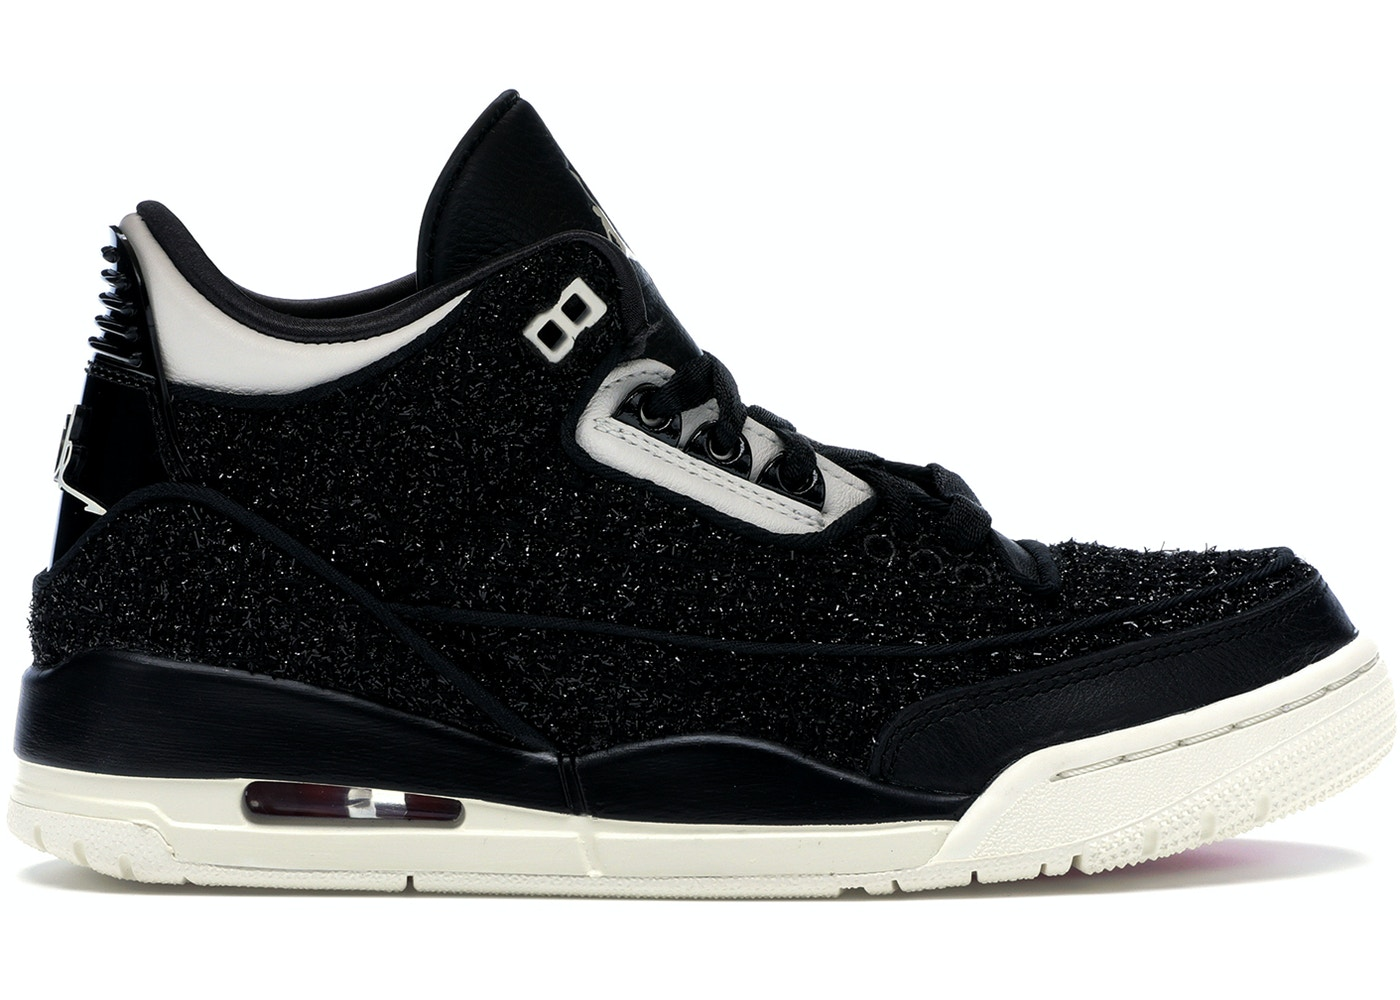 0940024f768 Jordan 3 Retro AWOK Vogue Black (W) - BQ3195-001